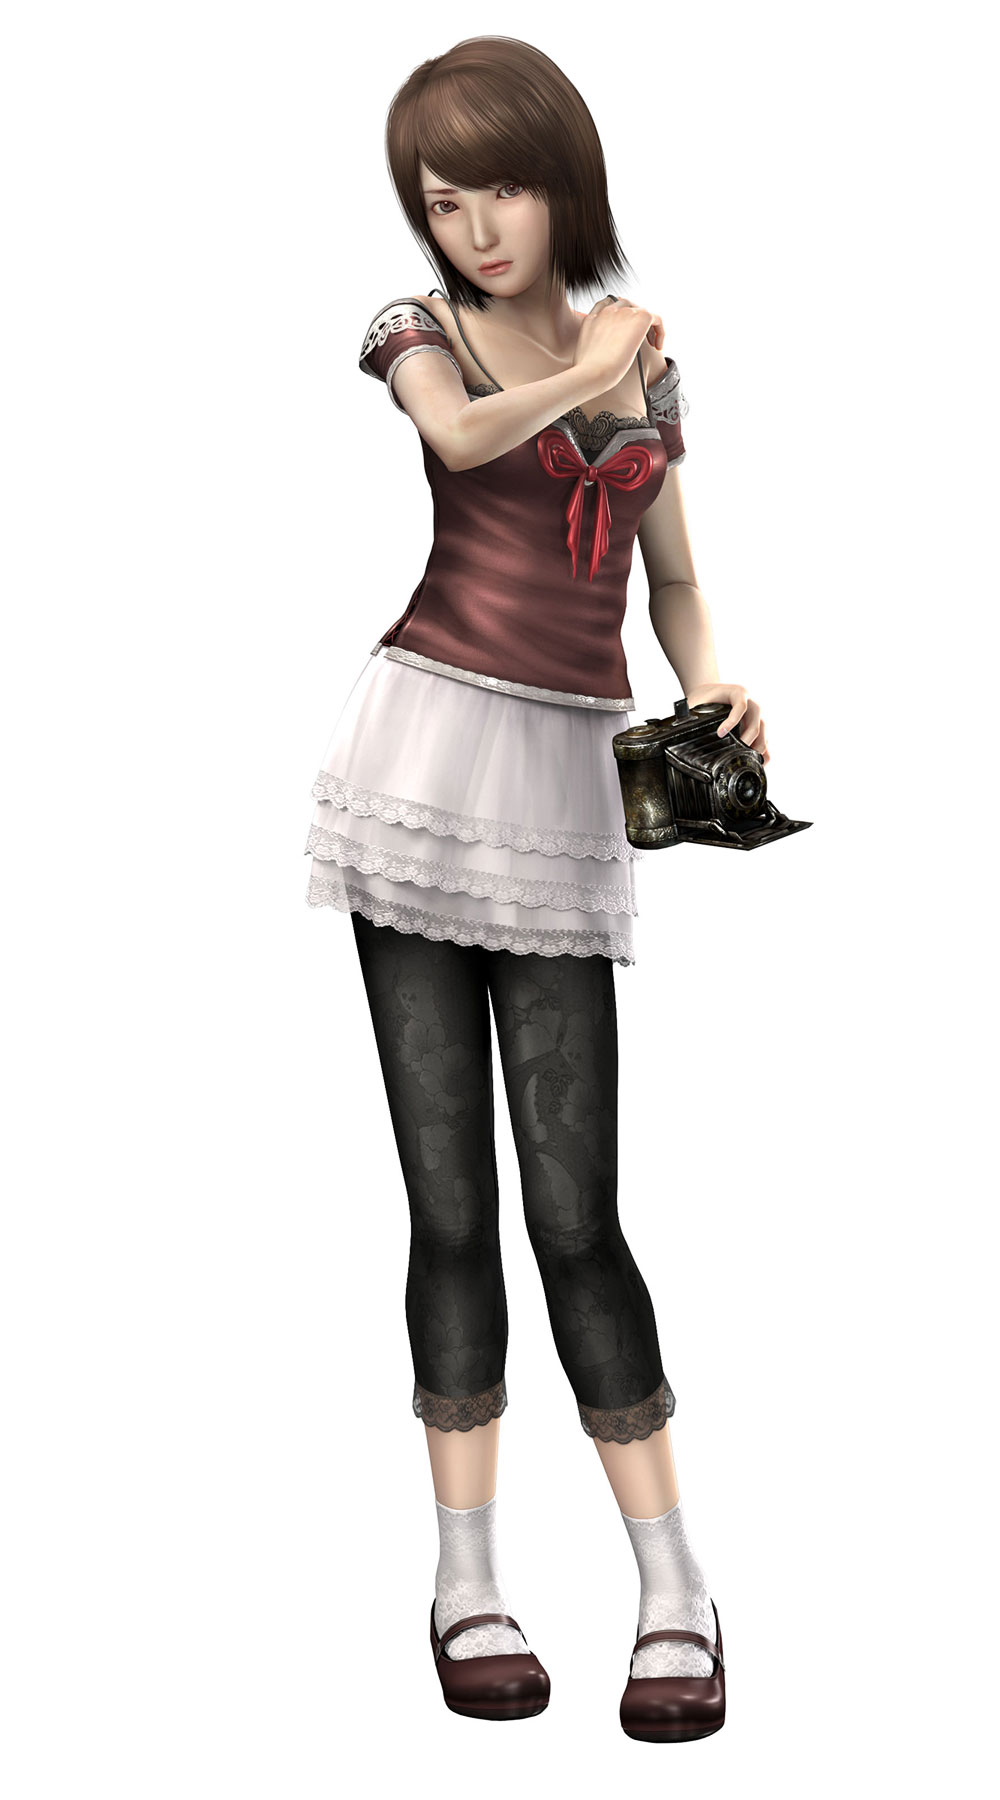 Mio Amakura | Fatal Frame Wiki | FANDOM powered by Wikia